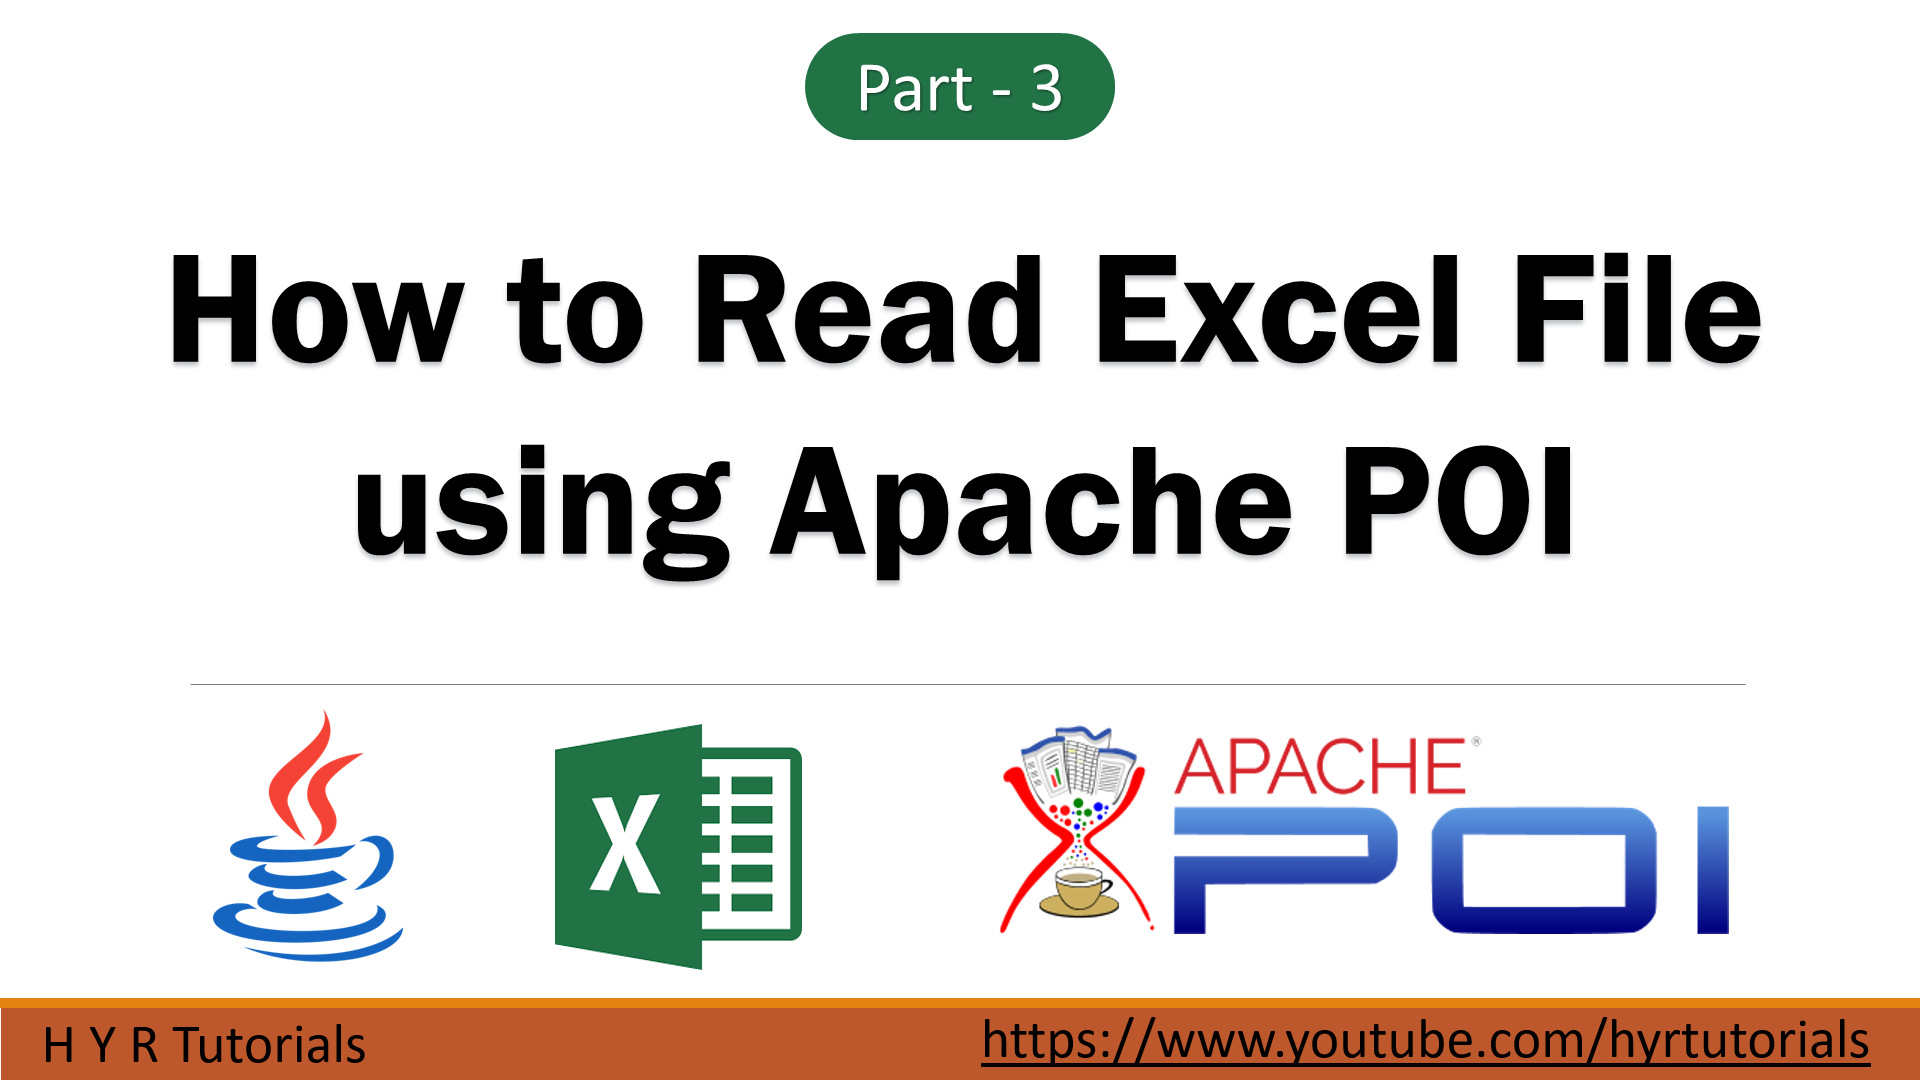 How to Read Excel File using Apache POI